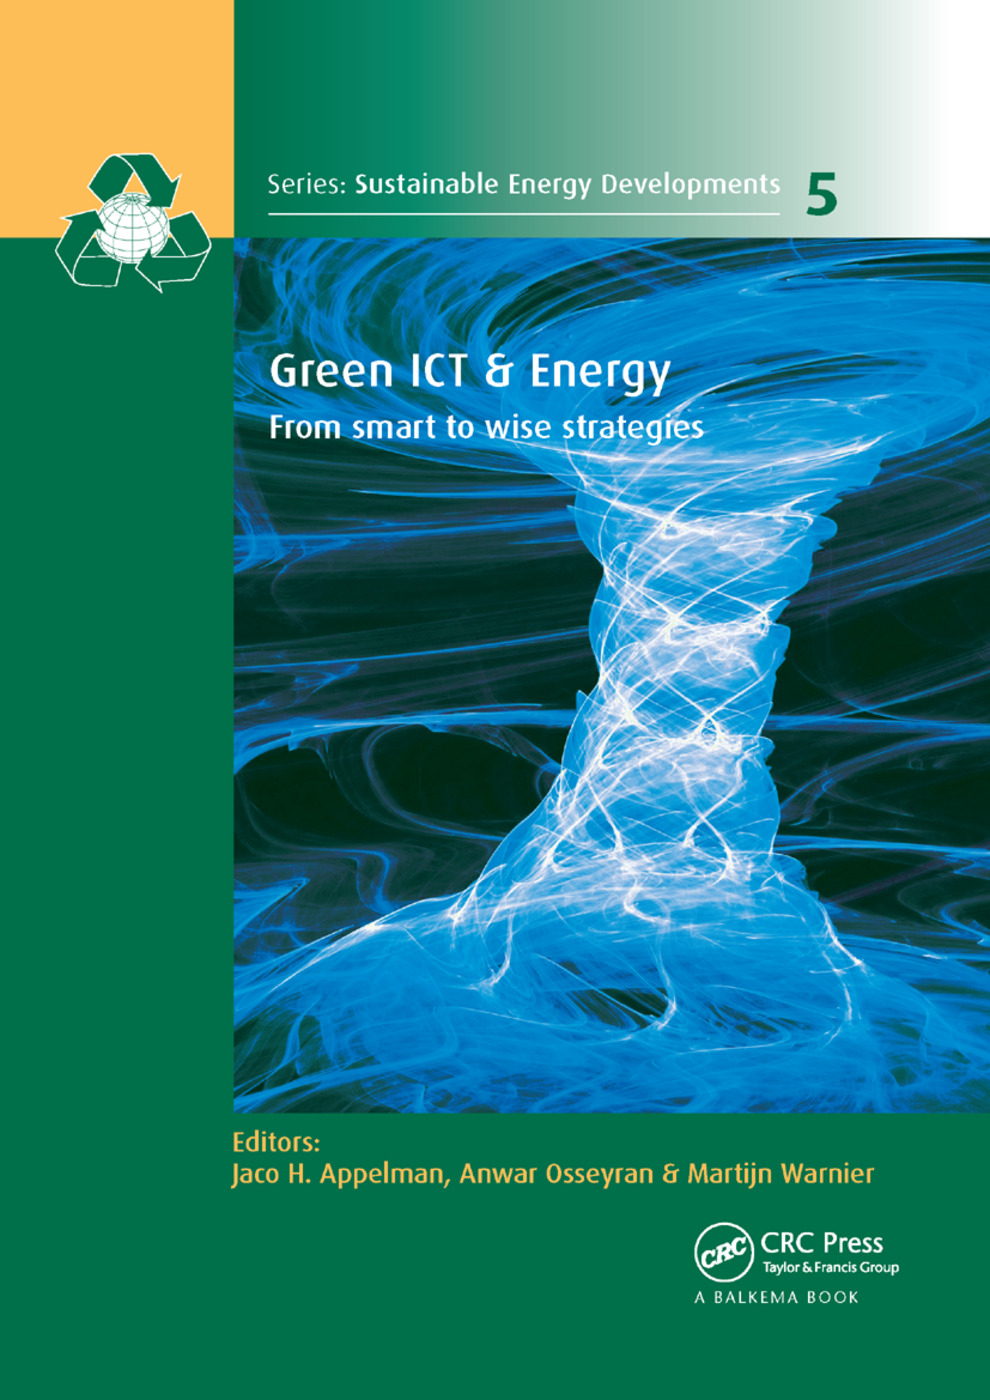 Green ICT & Energy: From Smart to Wise Strategies book cover